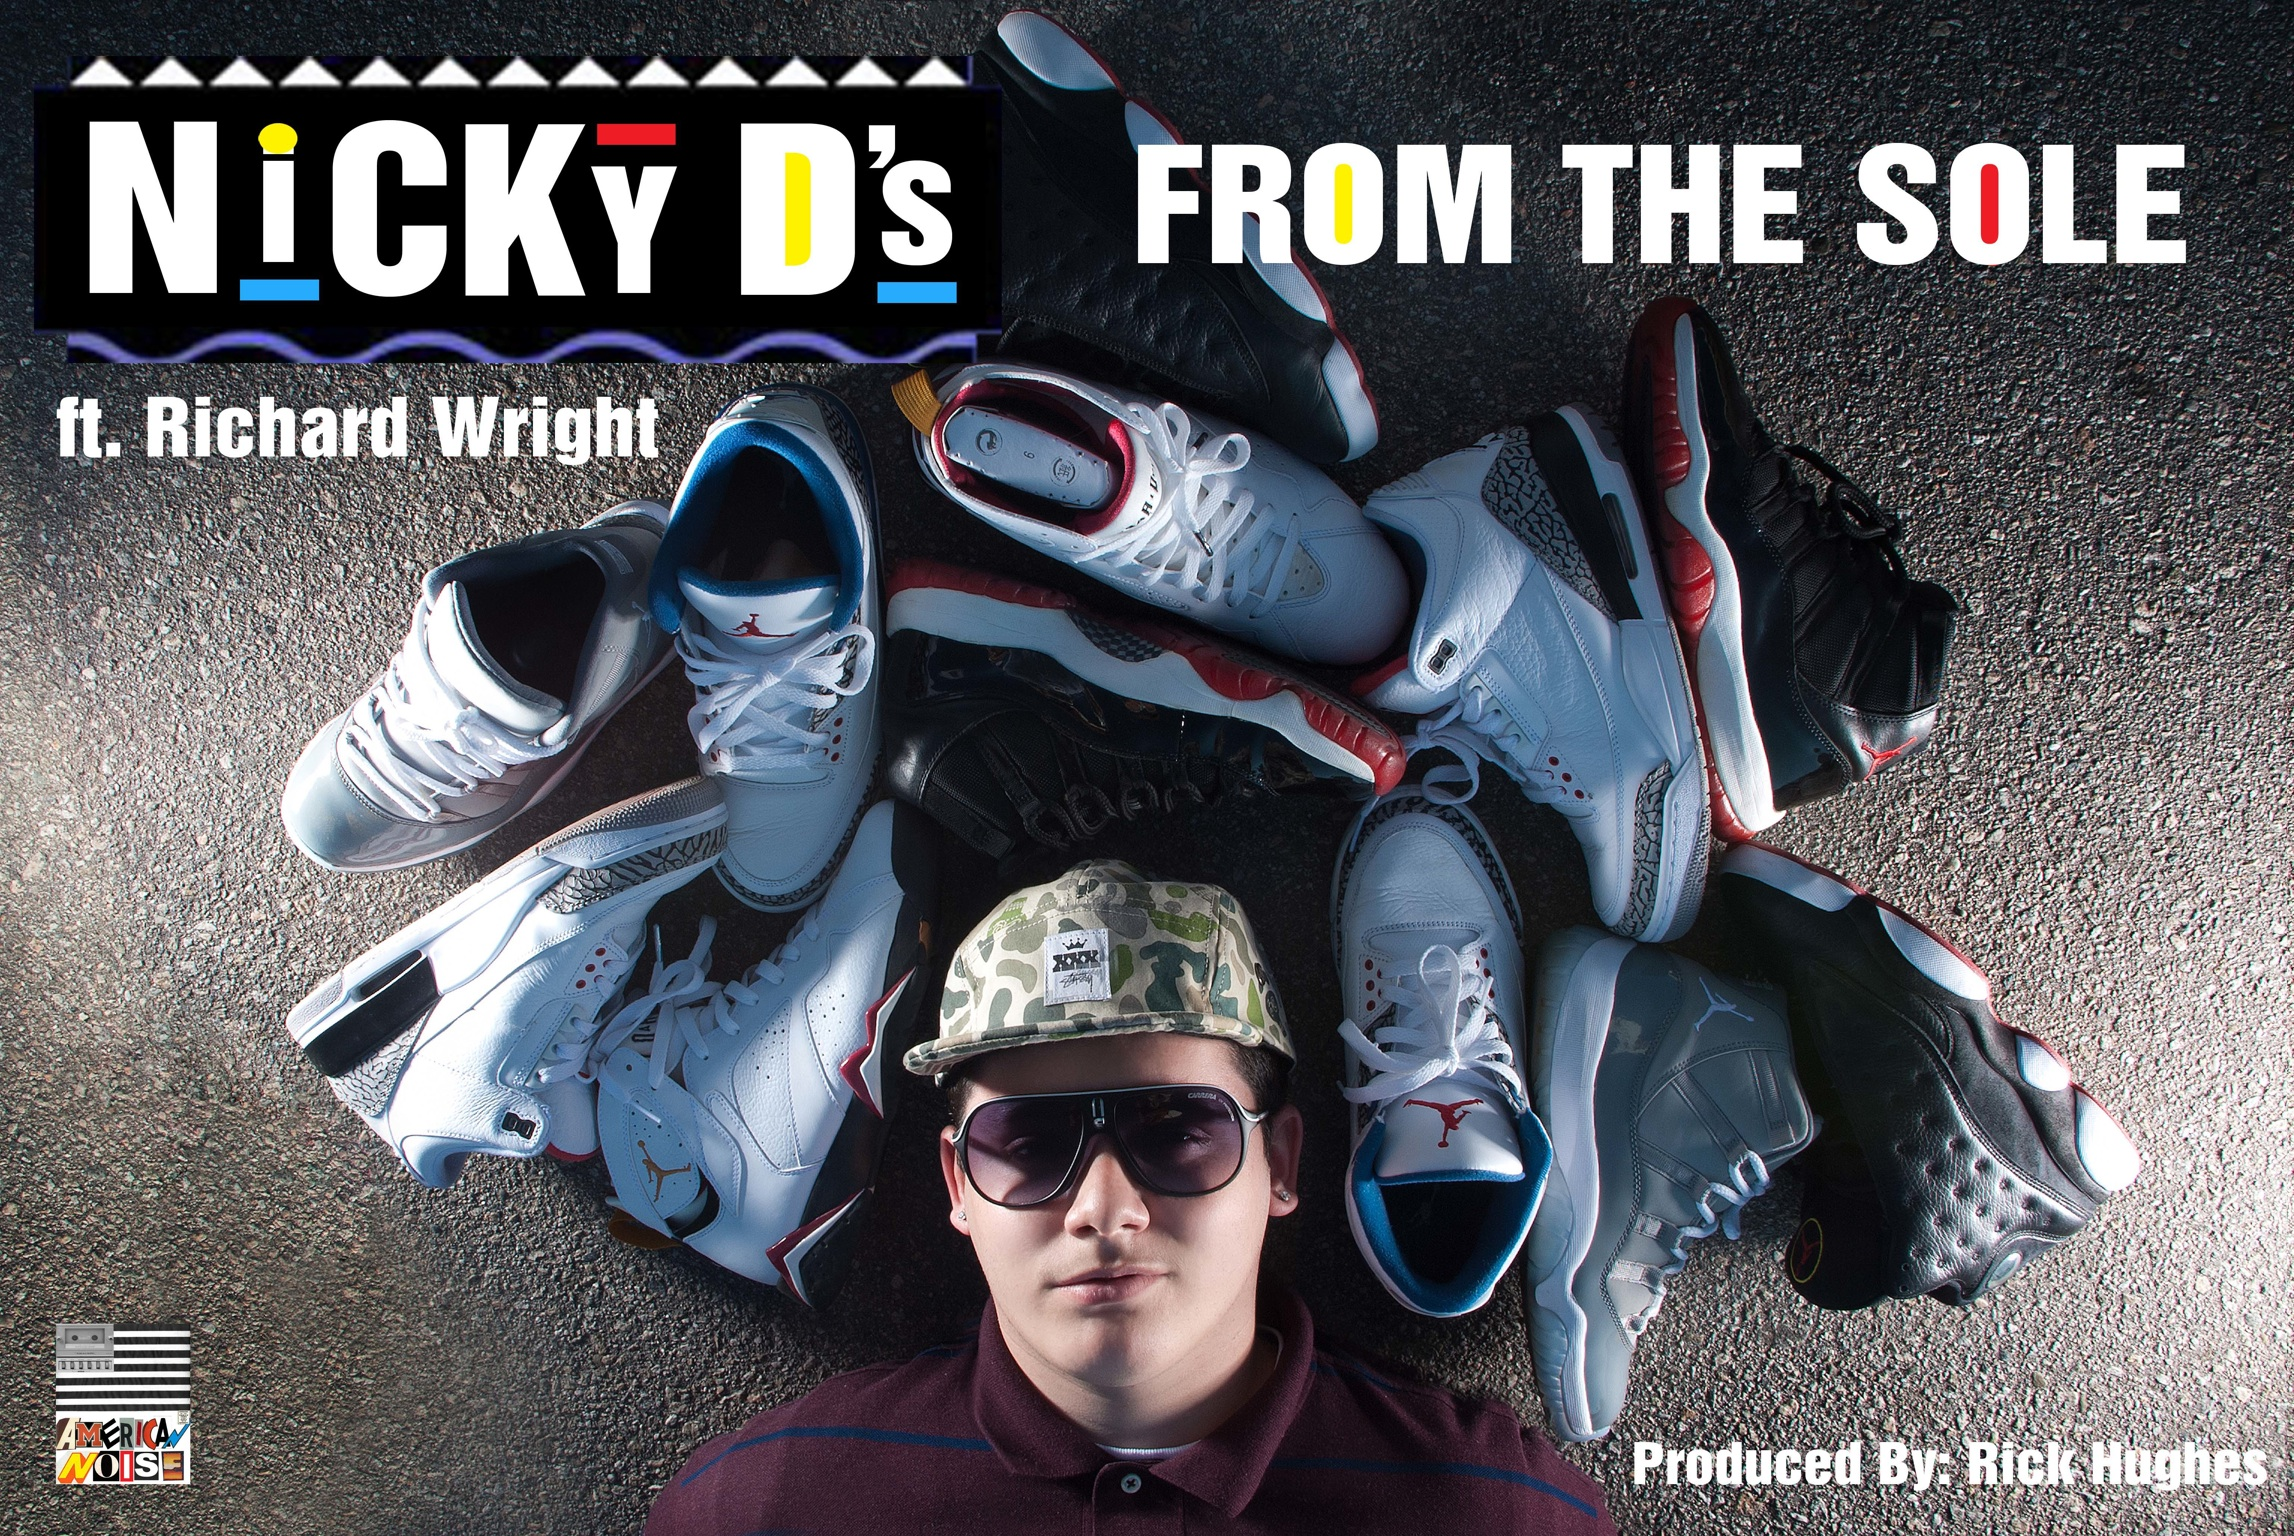 @NICKYDSSS FROM THE SOLE (THE SNEAKER FIEND TRACK) prod by @rick_hughes #ninjatools #newmusic